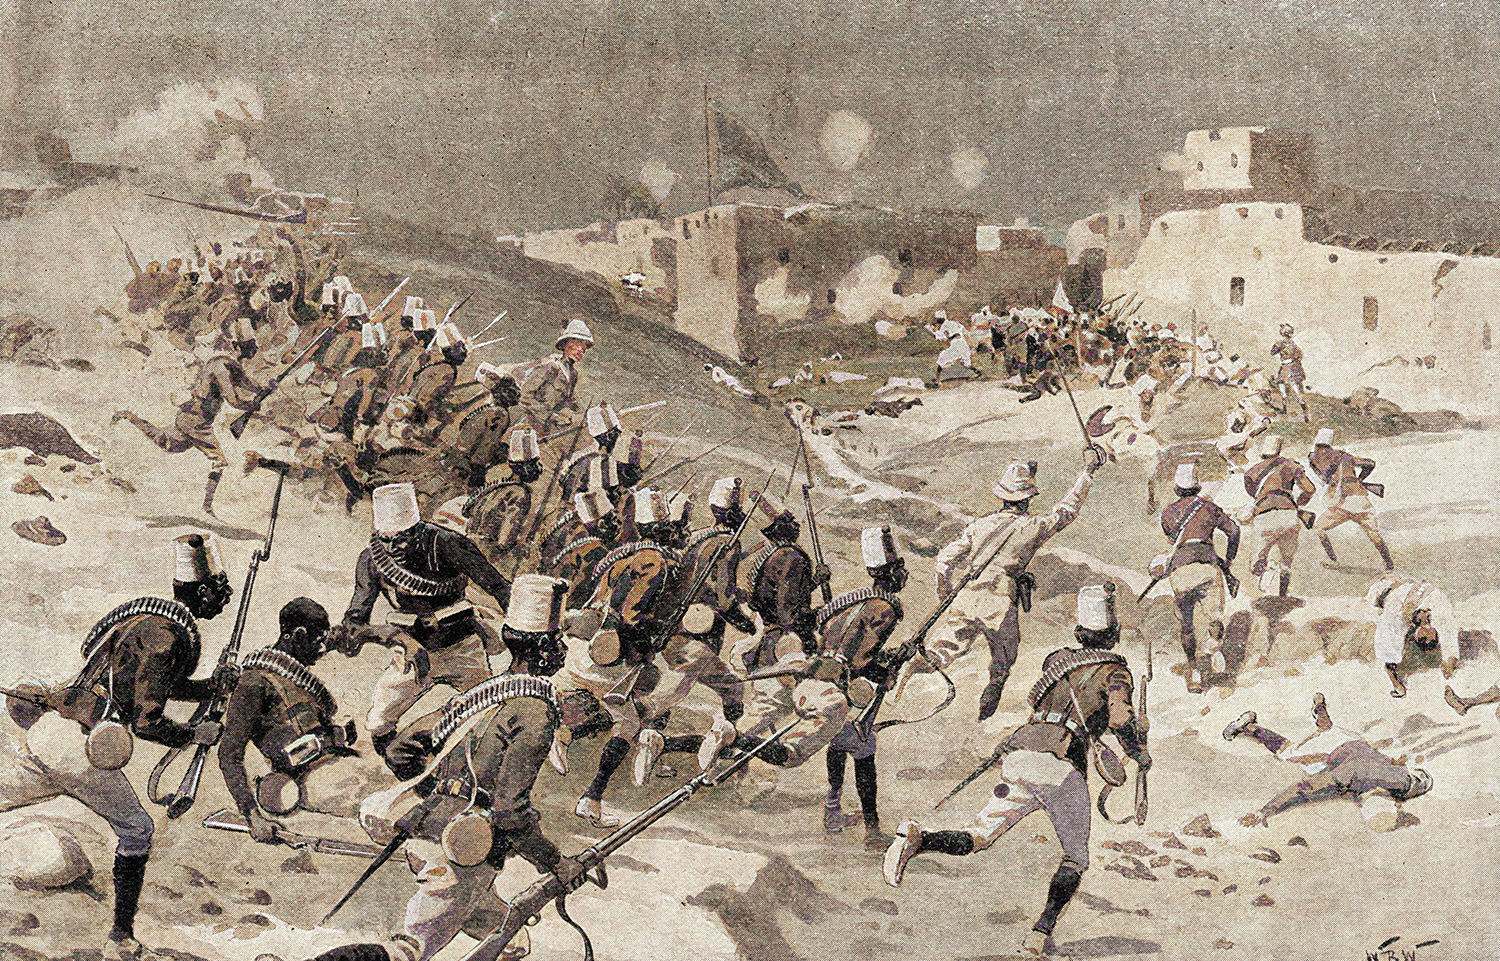 Sudanese troops charging during the Battle of Abu Hamed, fought on 7 August 1897